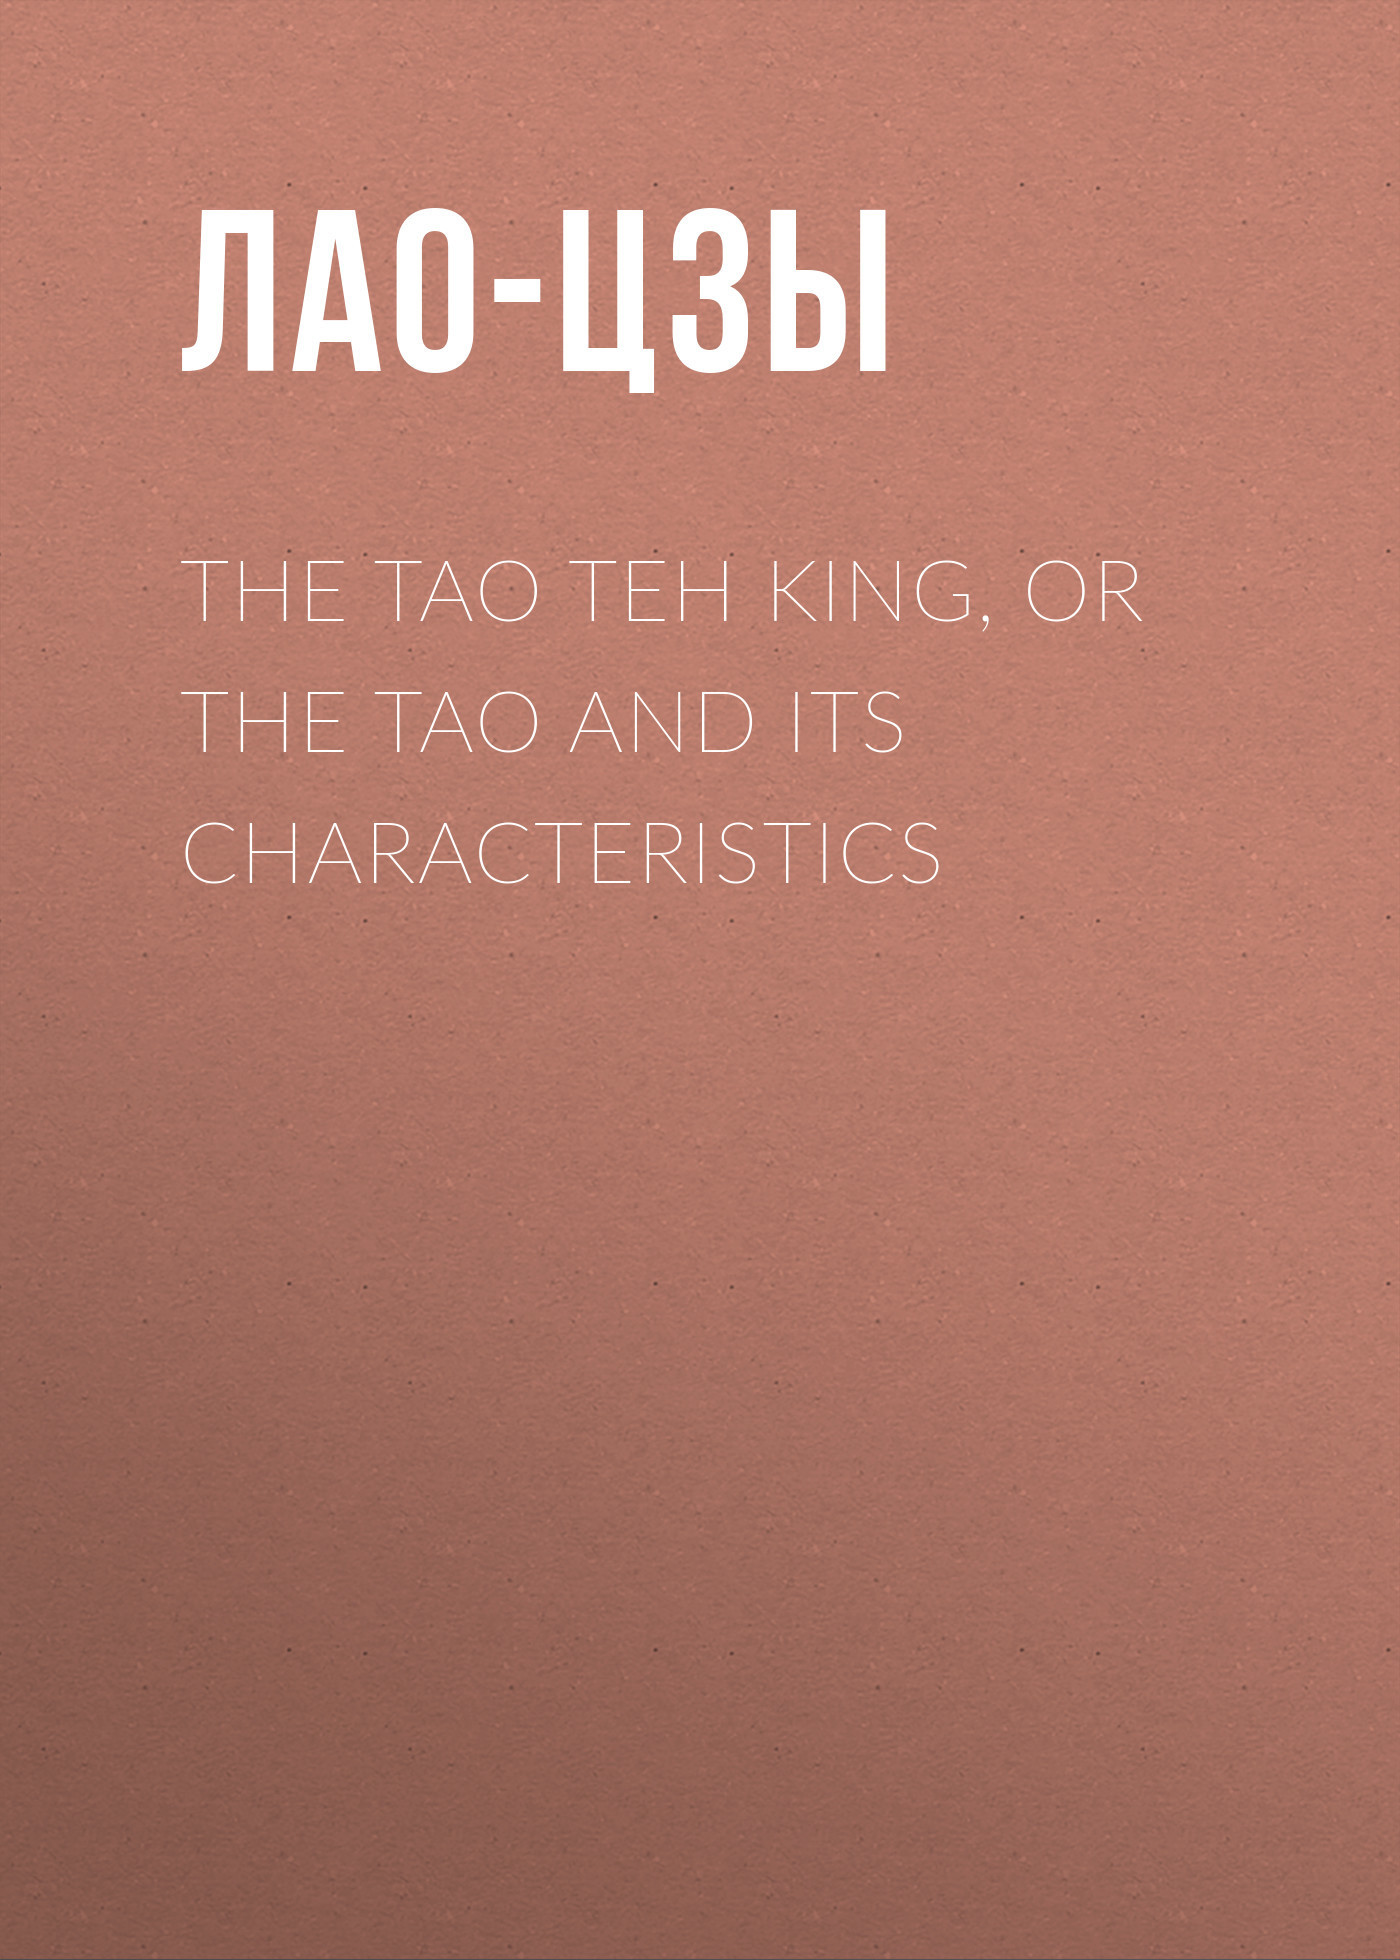 Лао-цзы The Tao Teh King, or   and its Characteristics